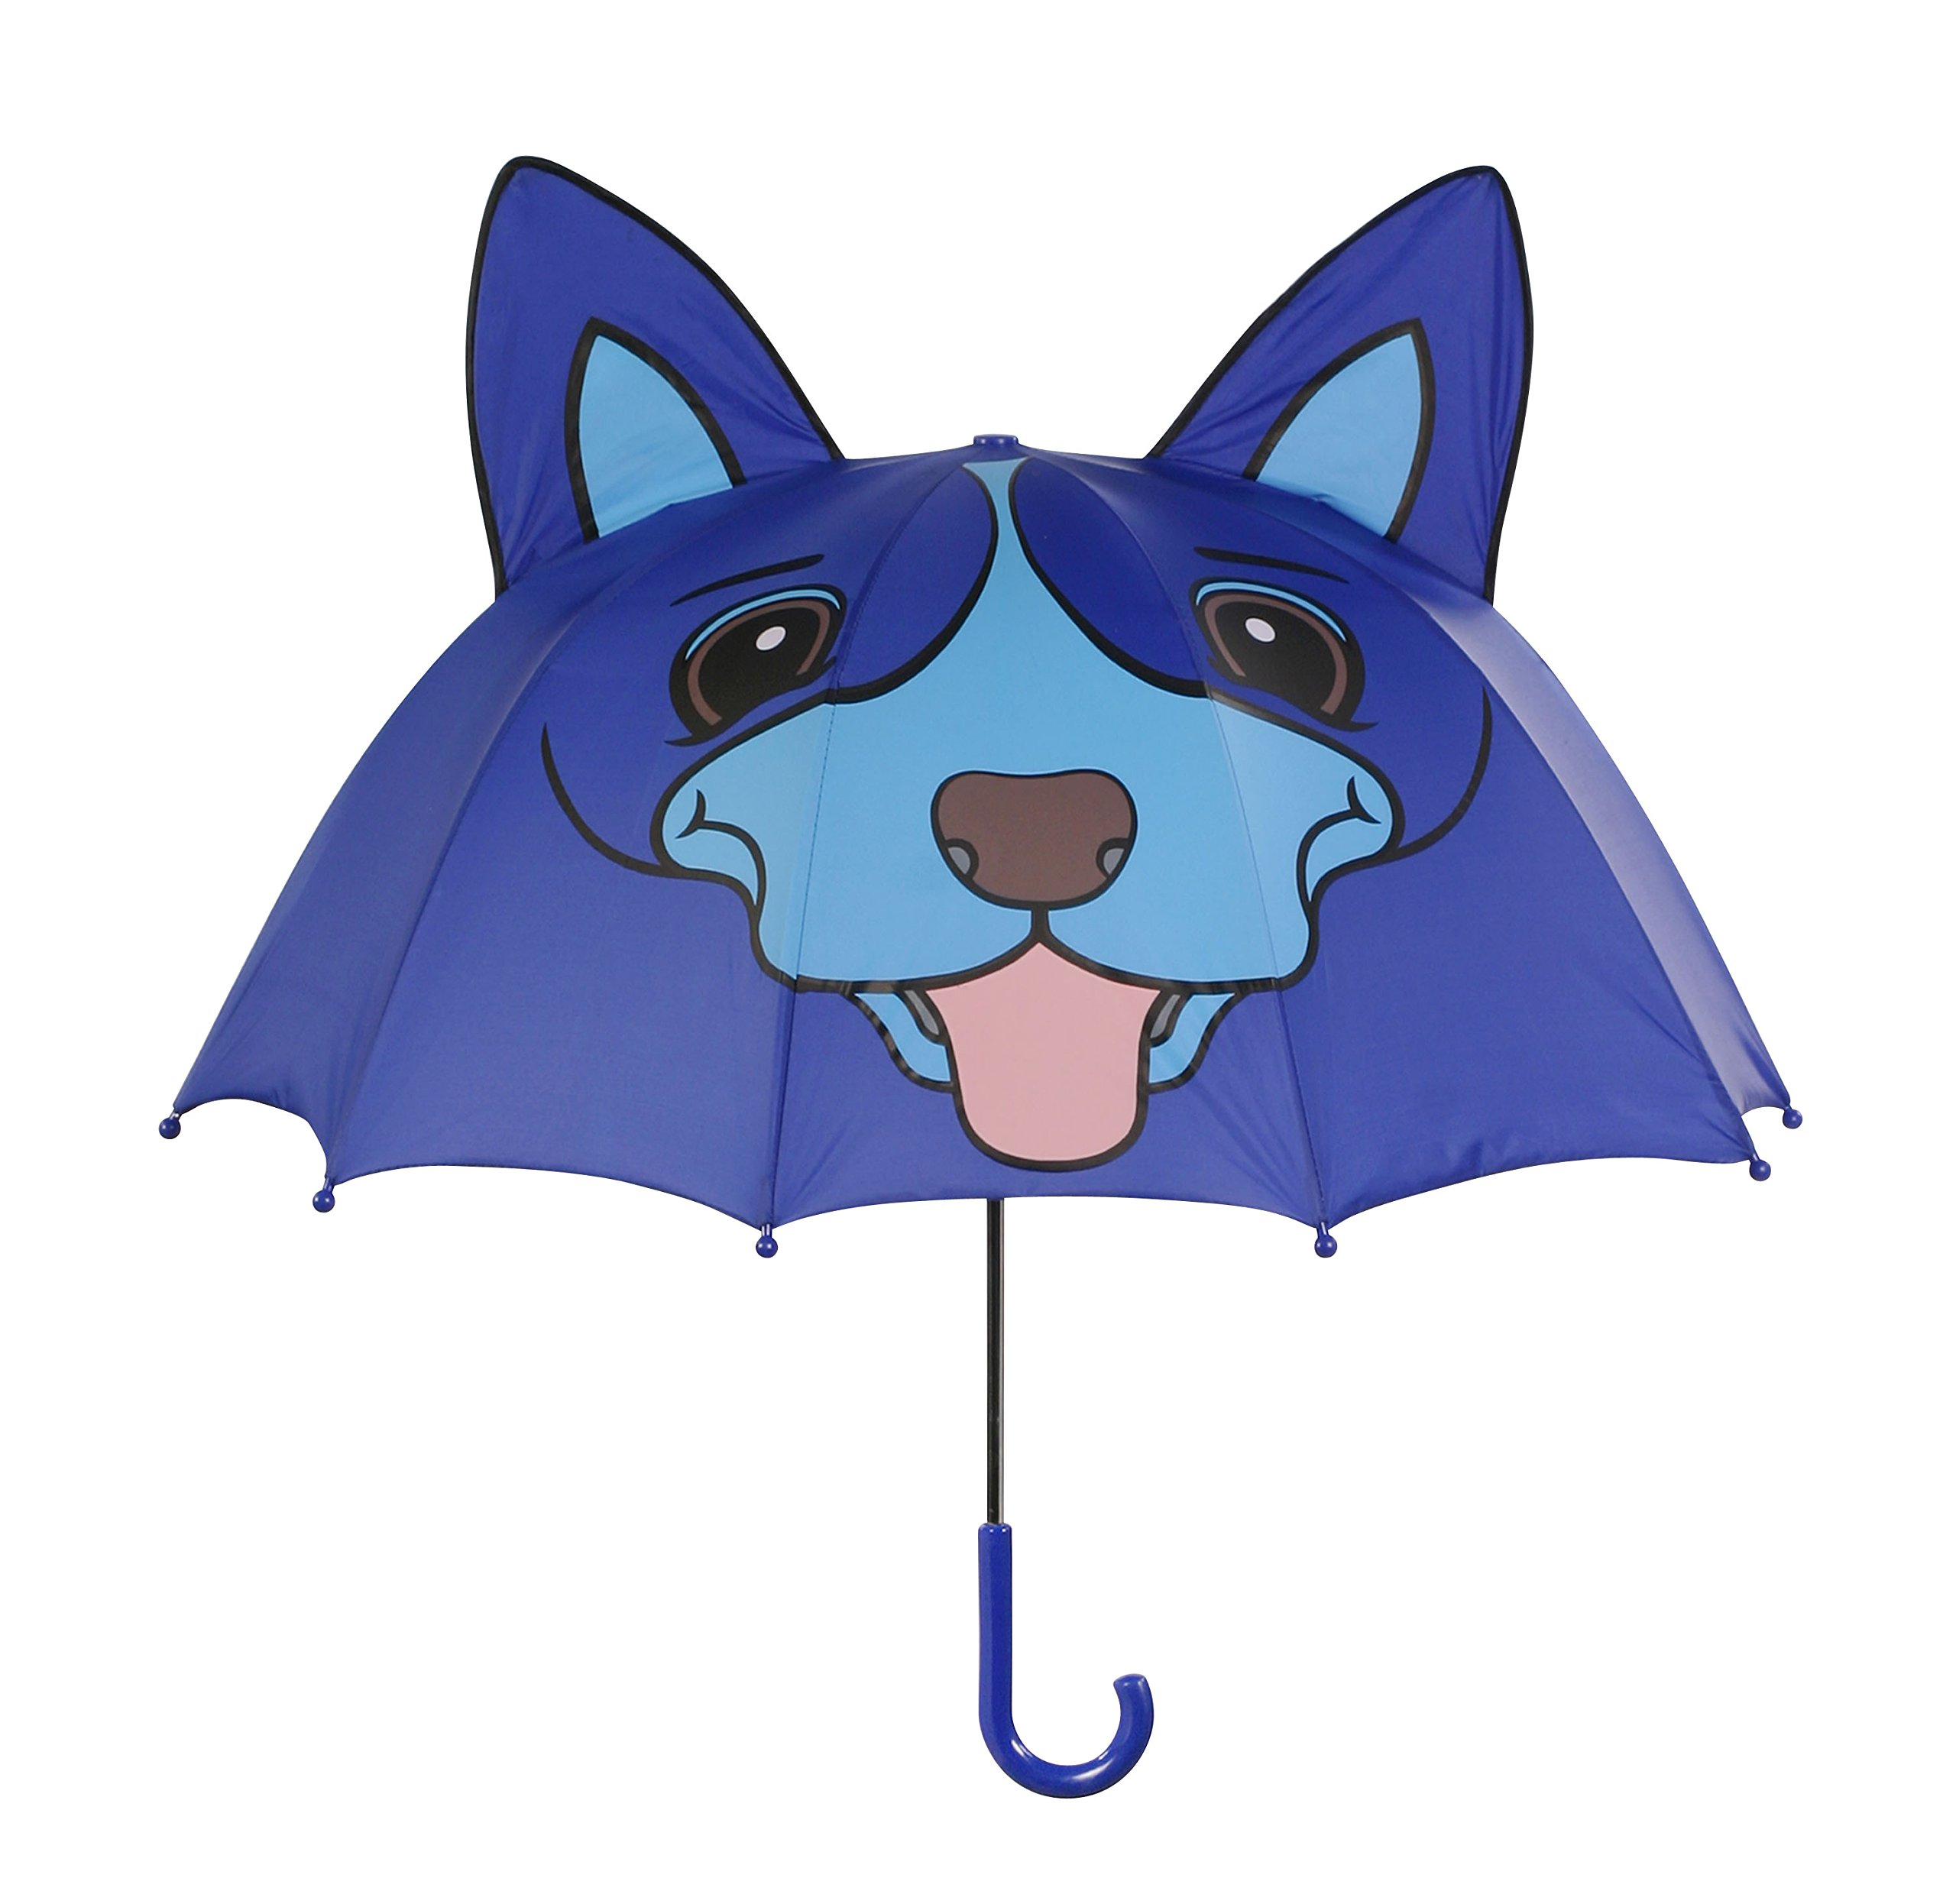 Kidorable Blue Dog Umbrella With Fun Pop-Out Ears, One Size by Kidorable (Image #1)